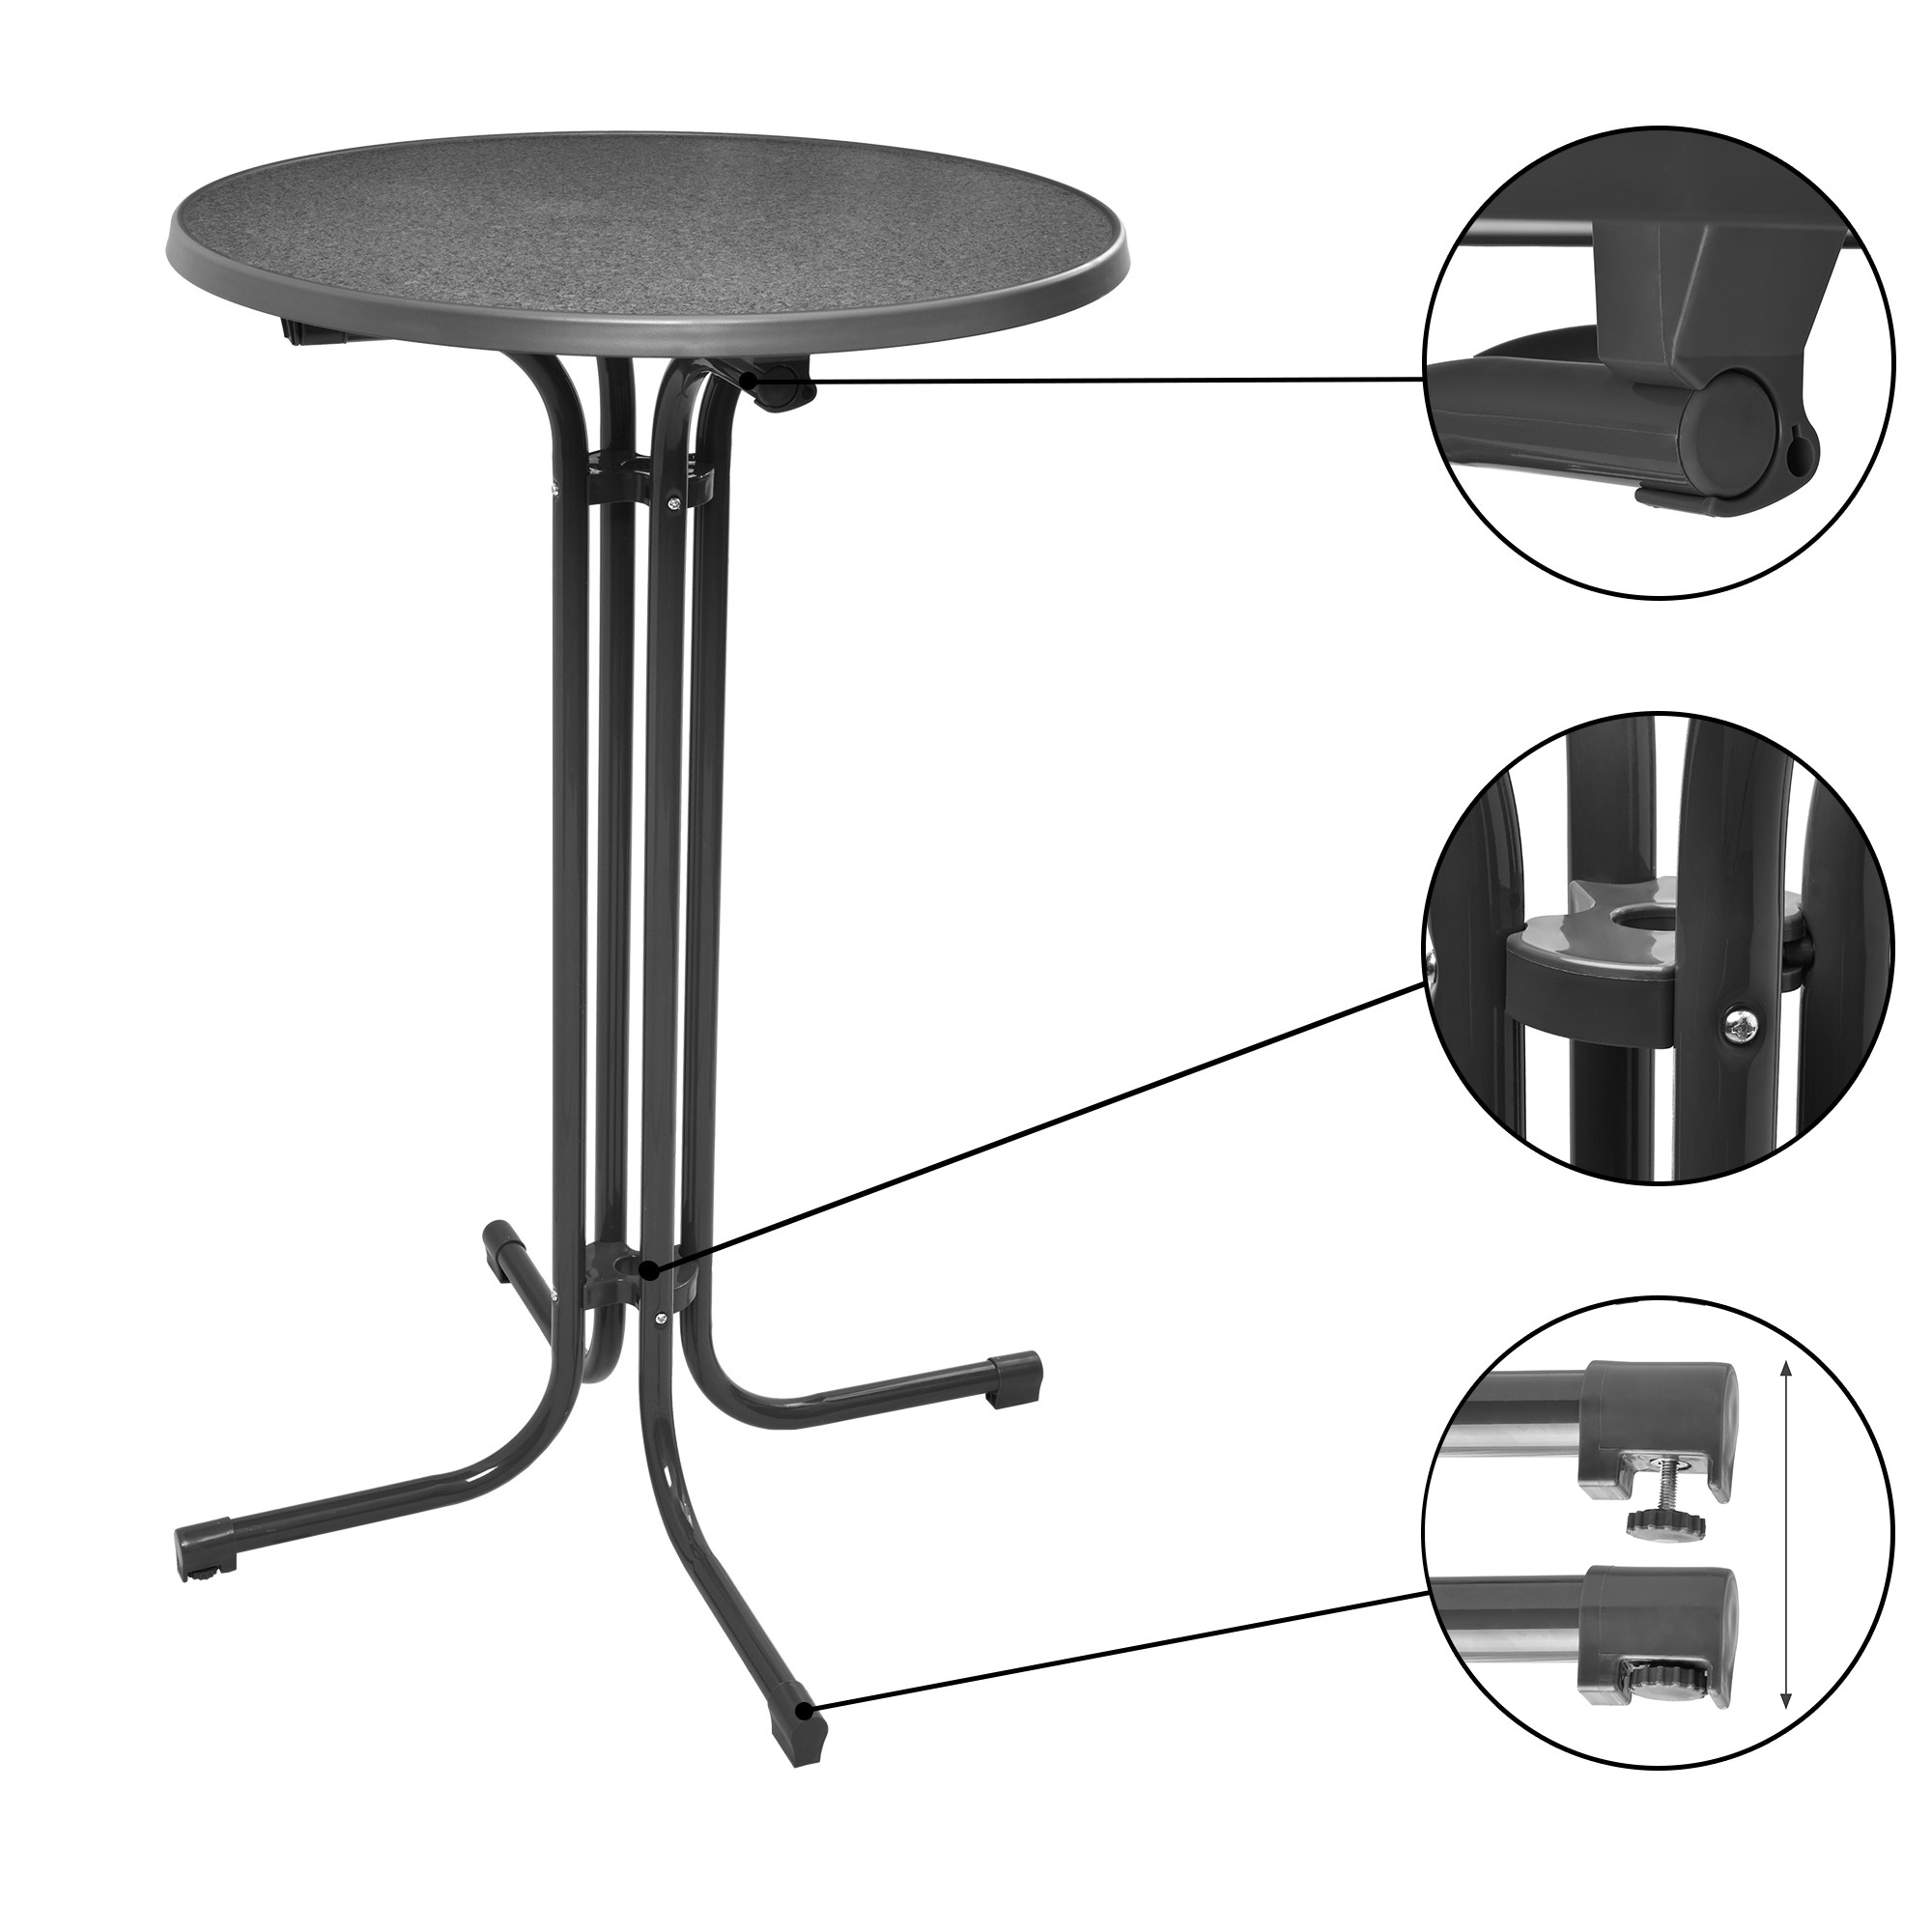 stehtisch bistrotisch klappbar bartisch bistro klapptisch 80 70 60 cm wei grau ebay. Black Bedroom Furniture Sets. Home Design Ideas